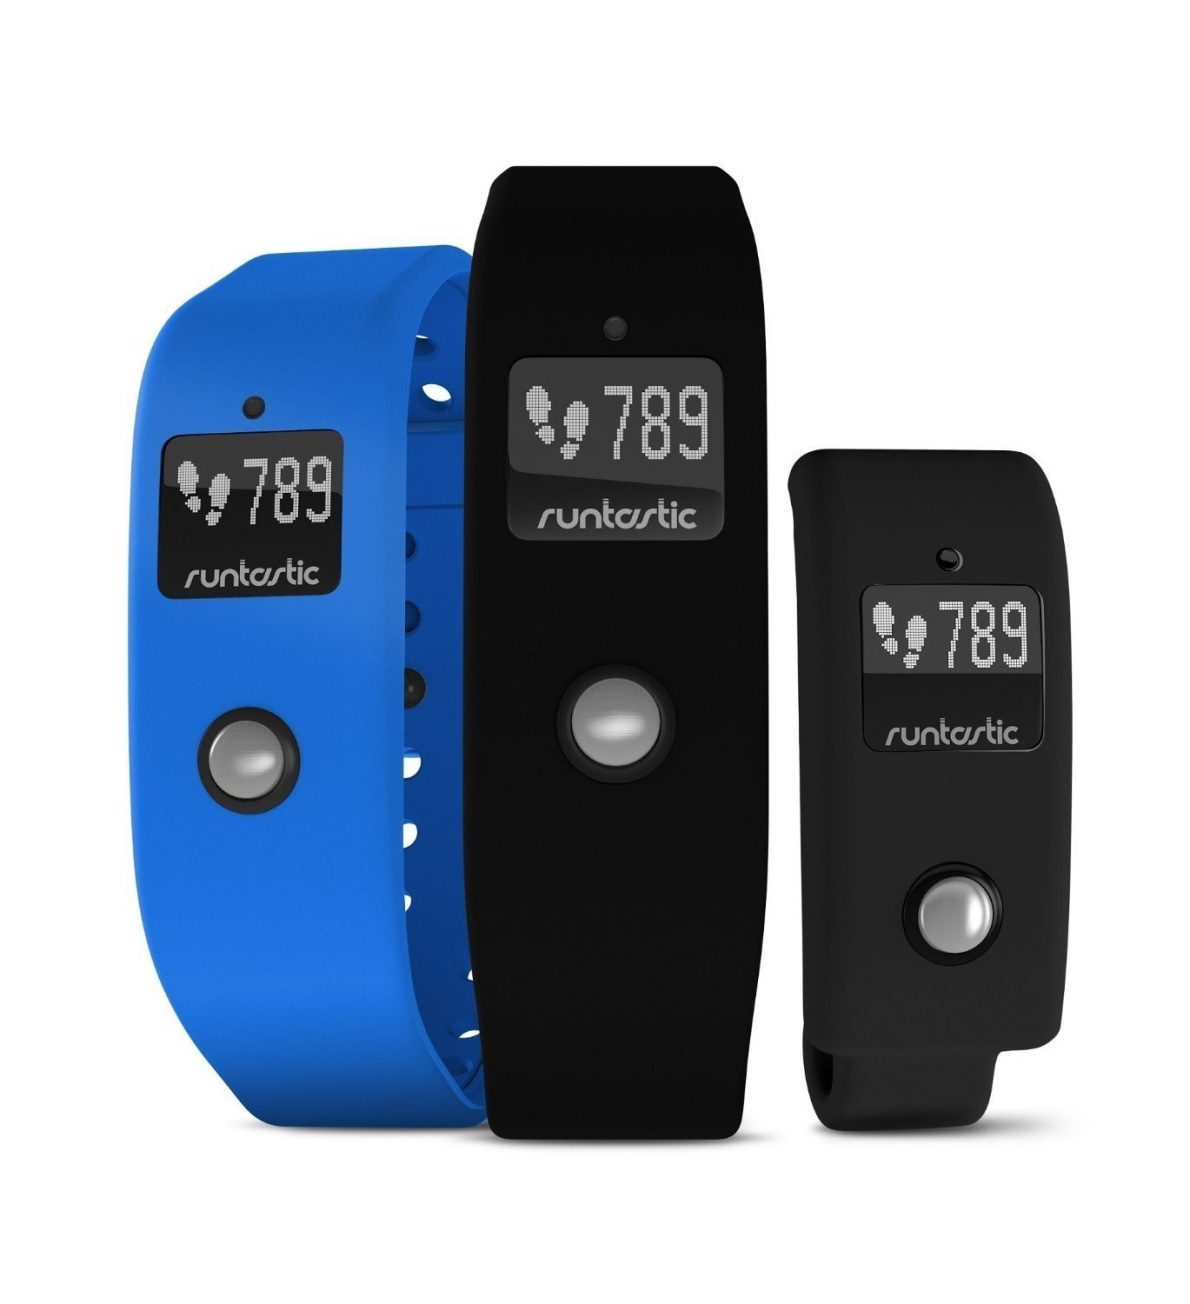 Runtastic RUNOR1 Review